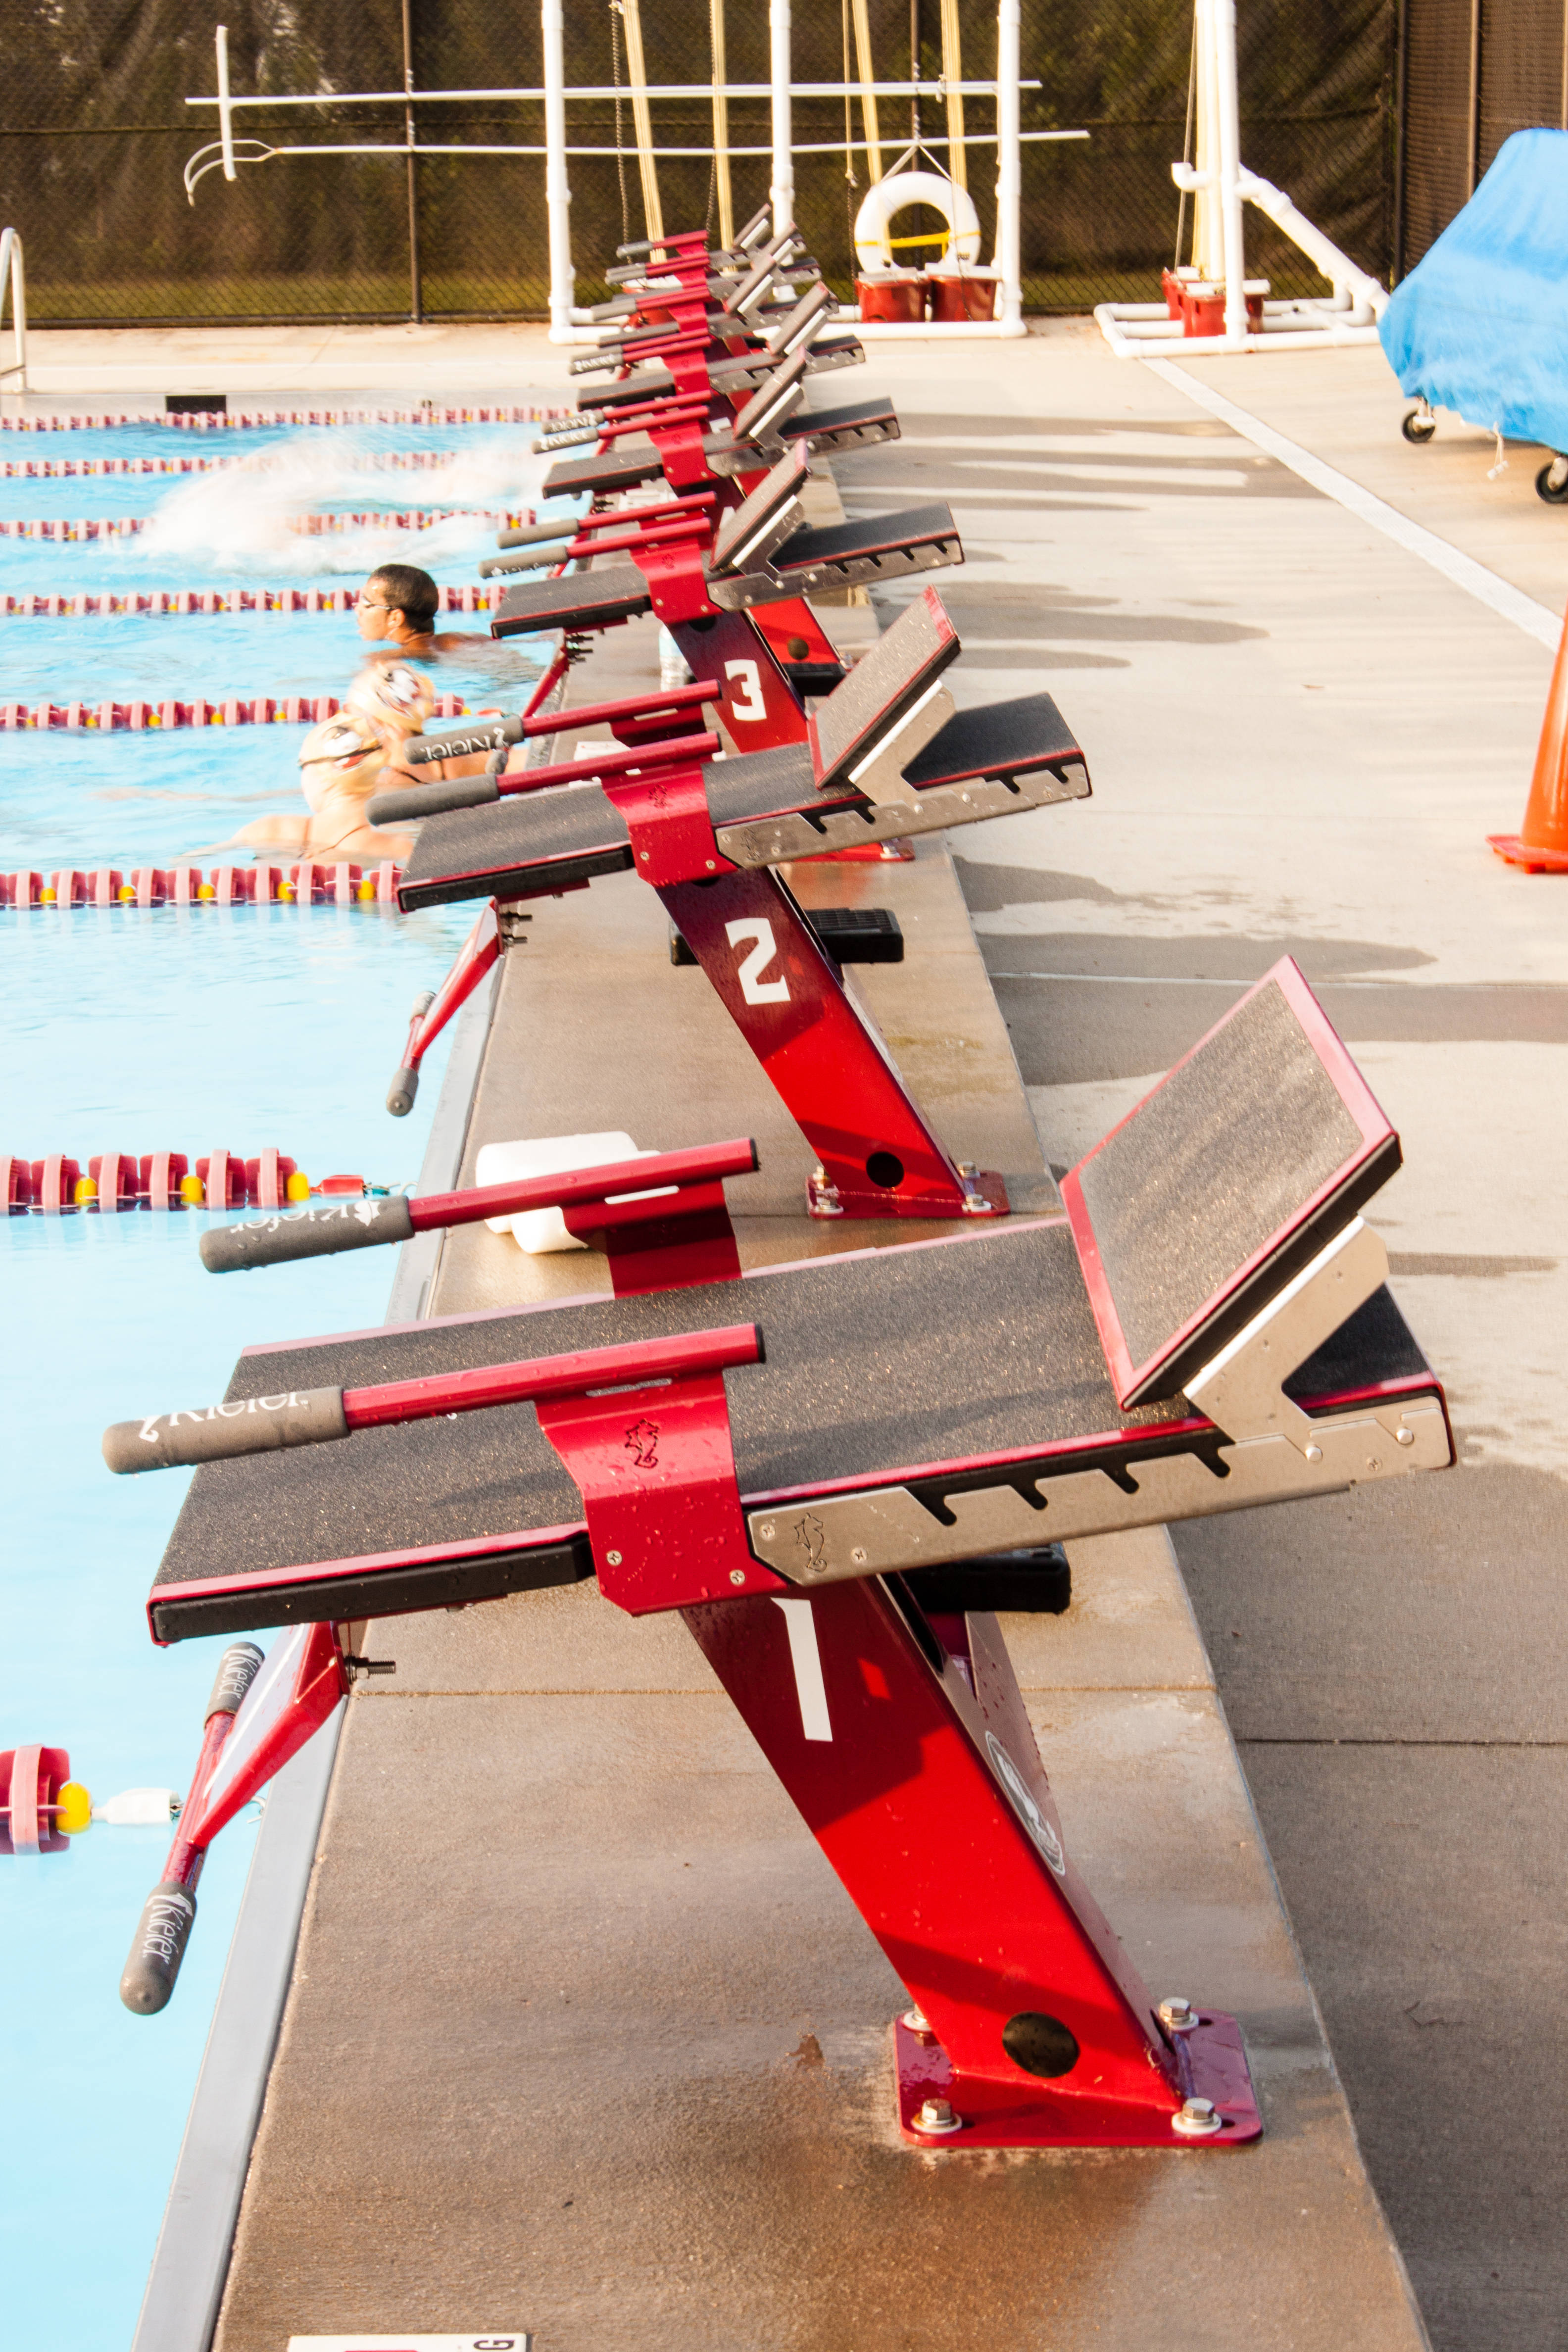 The improved starting blocks were added to the facility in 2014.